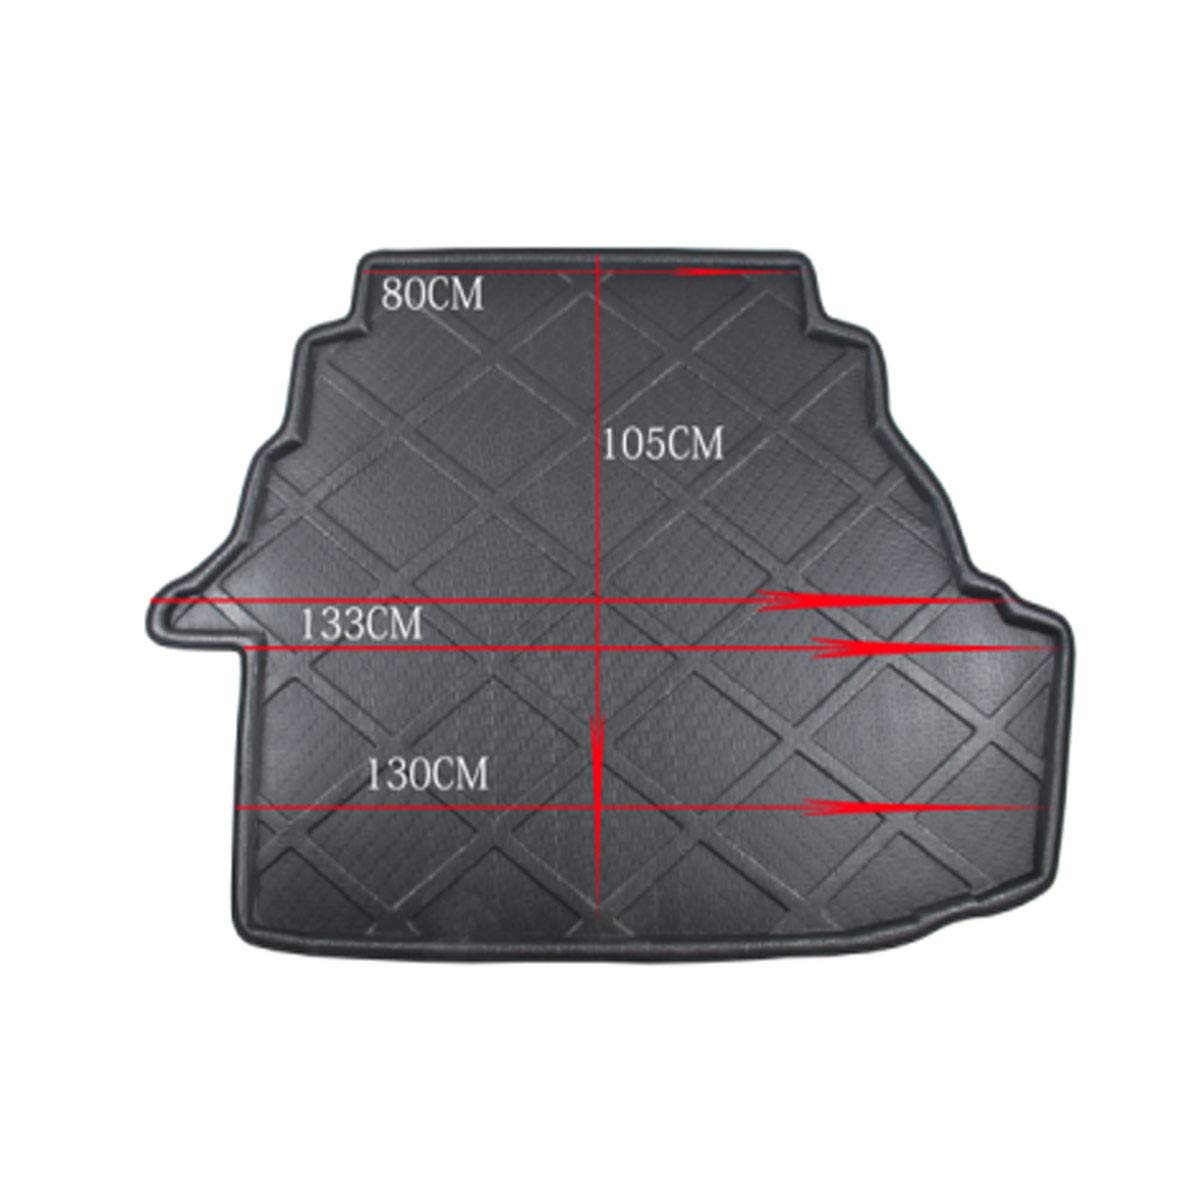 ZYHW Black Rear Trunk Tray Auto Cargo Liner Boot Rear Trunk Mat Floor Mat Cover Protector for 09-11 Toyota Camry